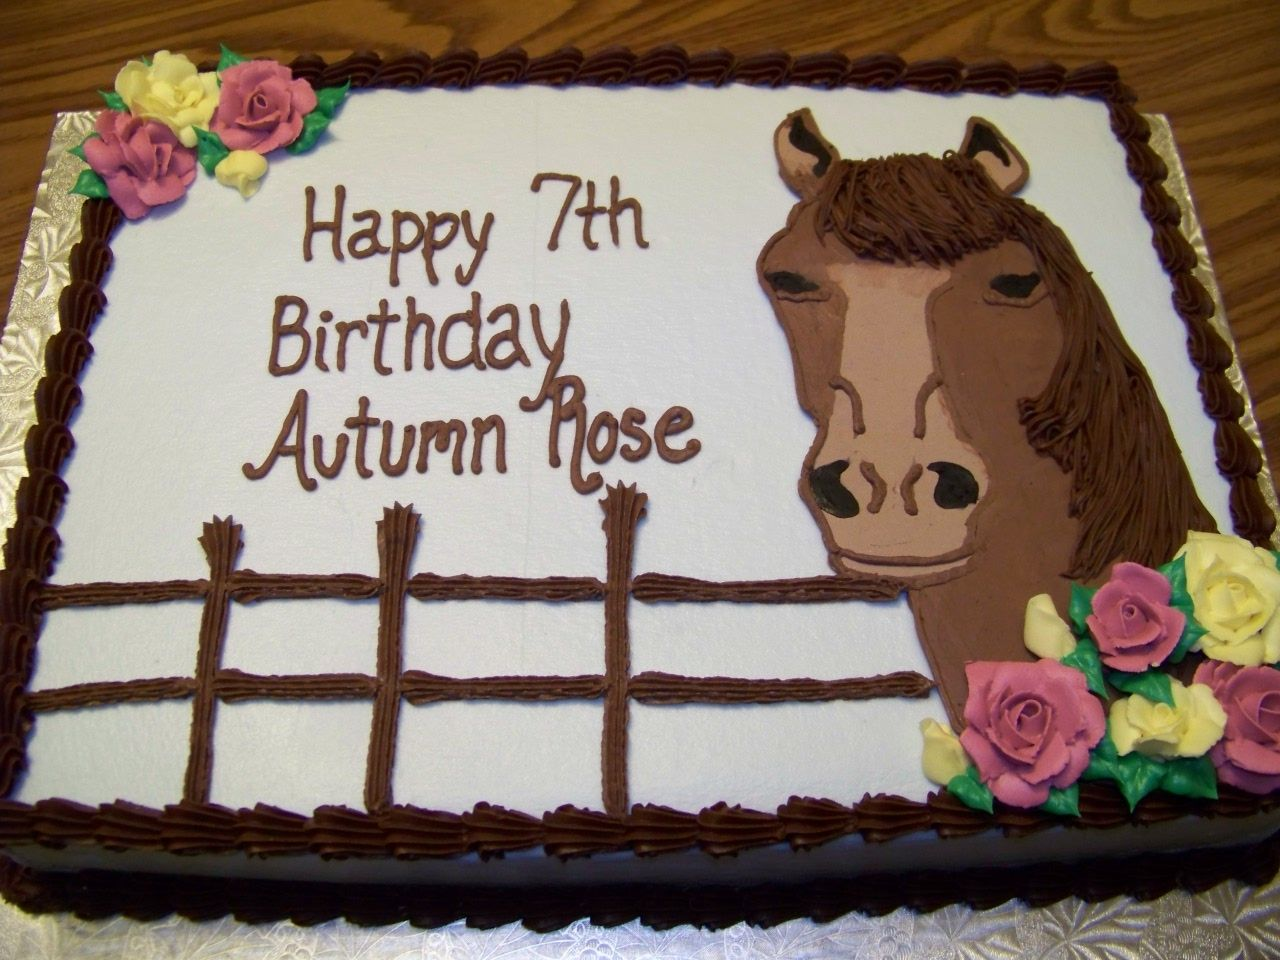 Horse Birthday Cakehaha I have a friend named atutmn rose let